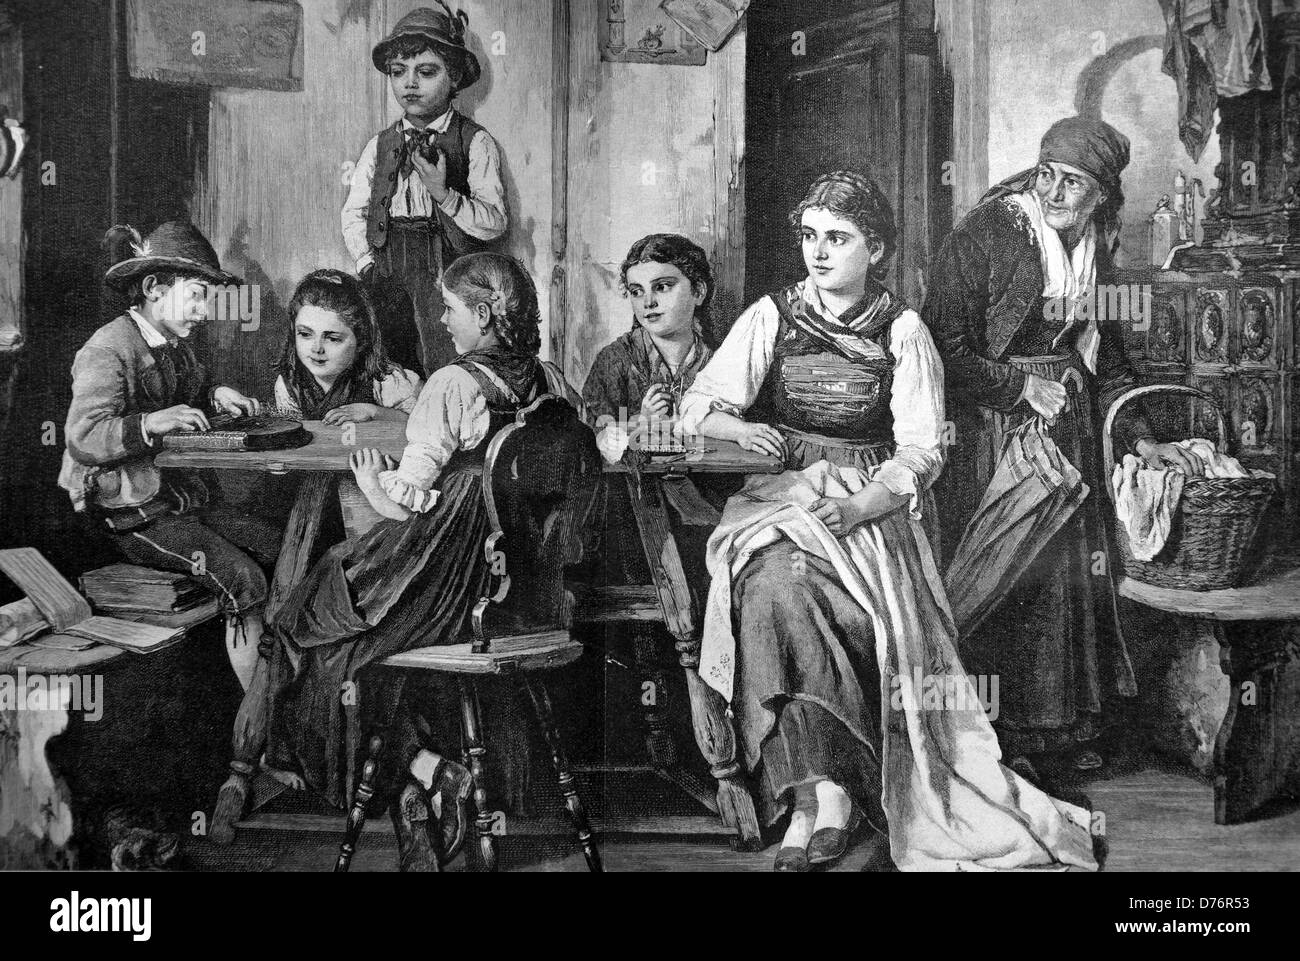 House music with zither, woodcut circa 1871 - Stock Image